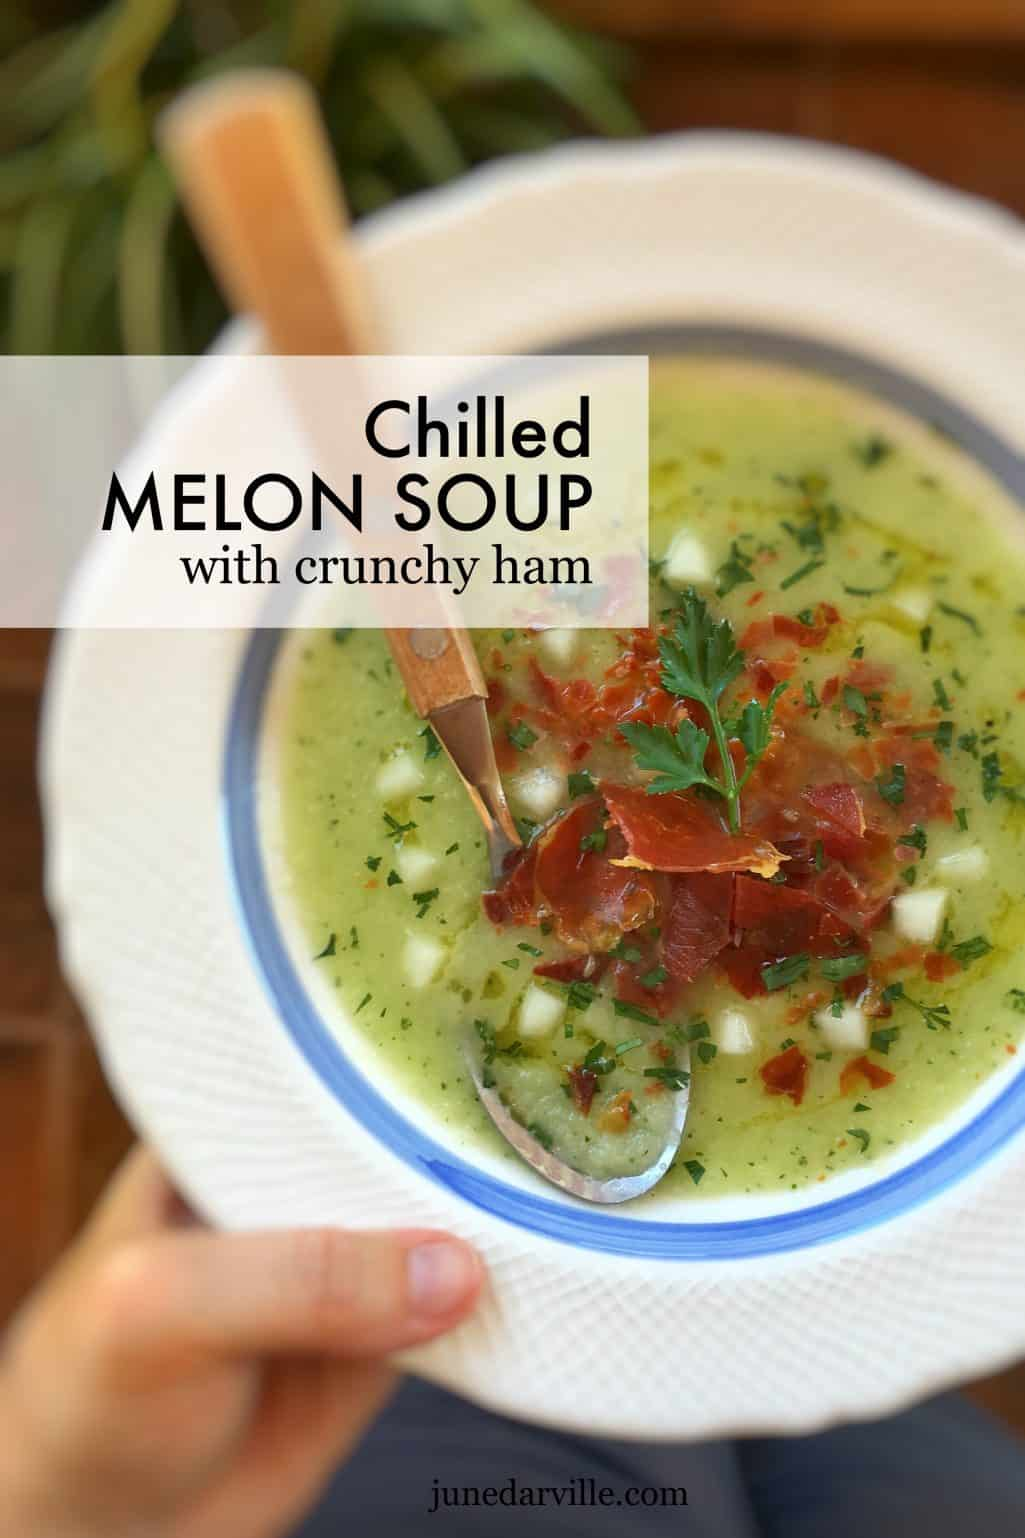 Chilled Melon Soup with Crunchy Ham | Simple. Tasty. Good.